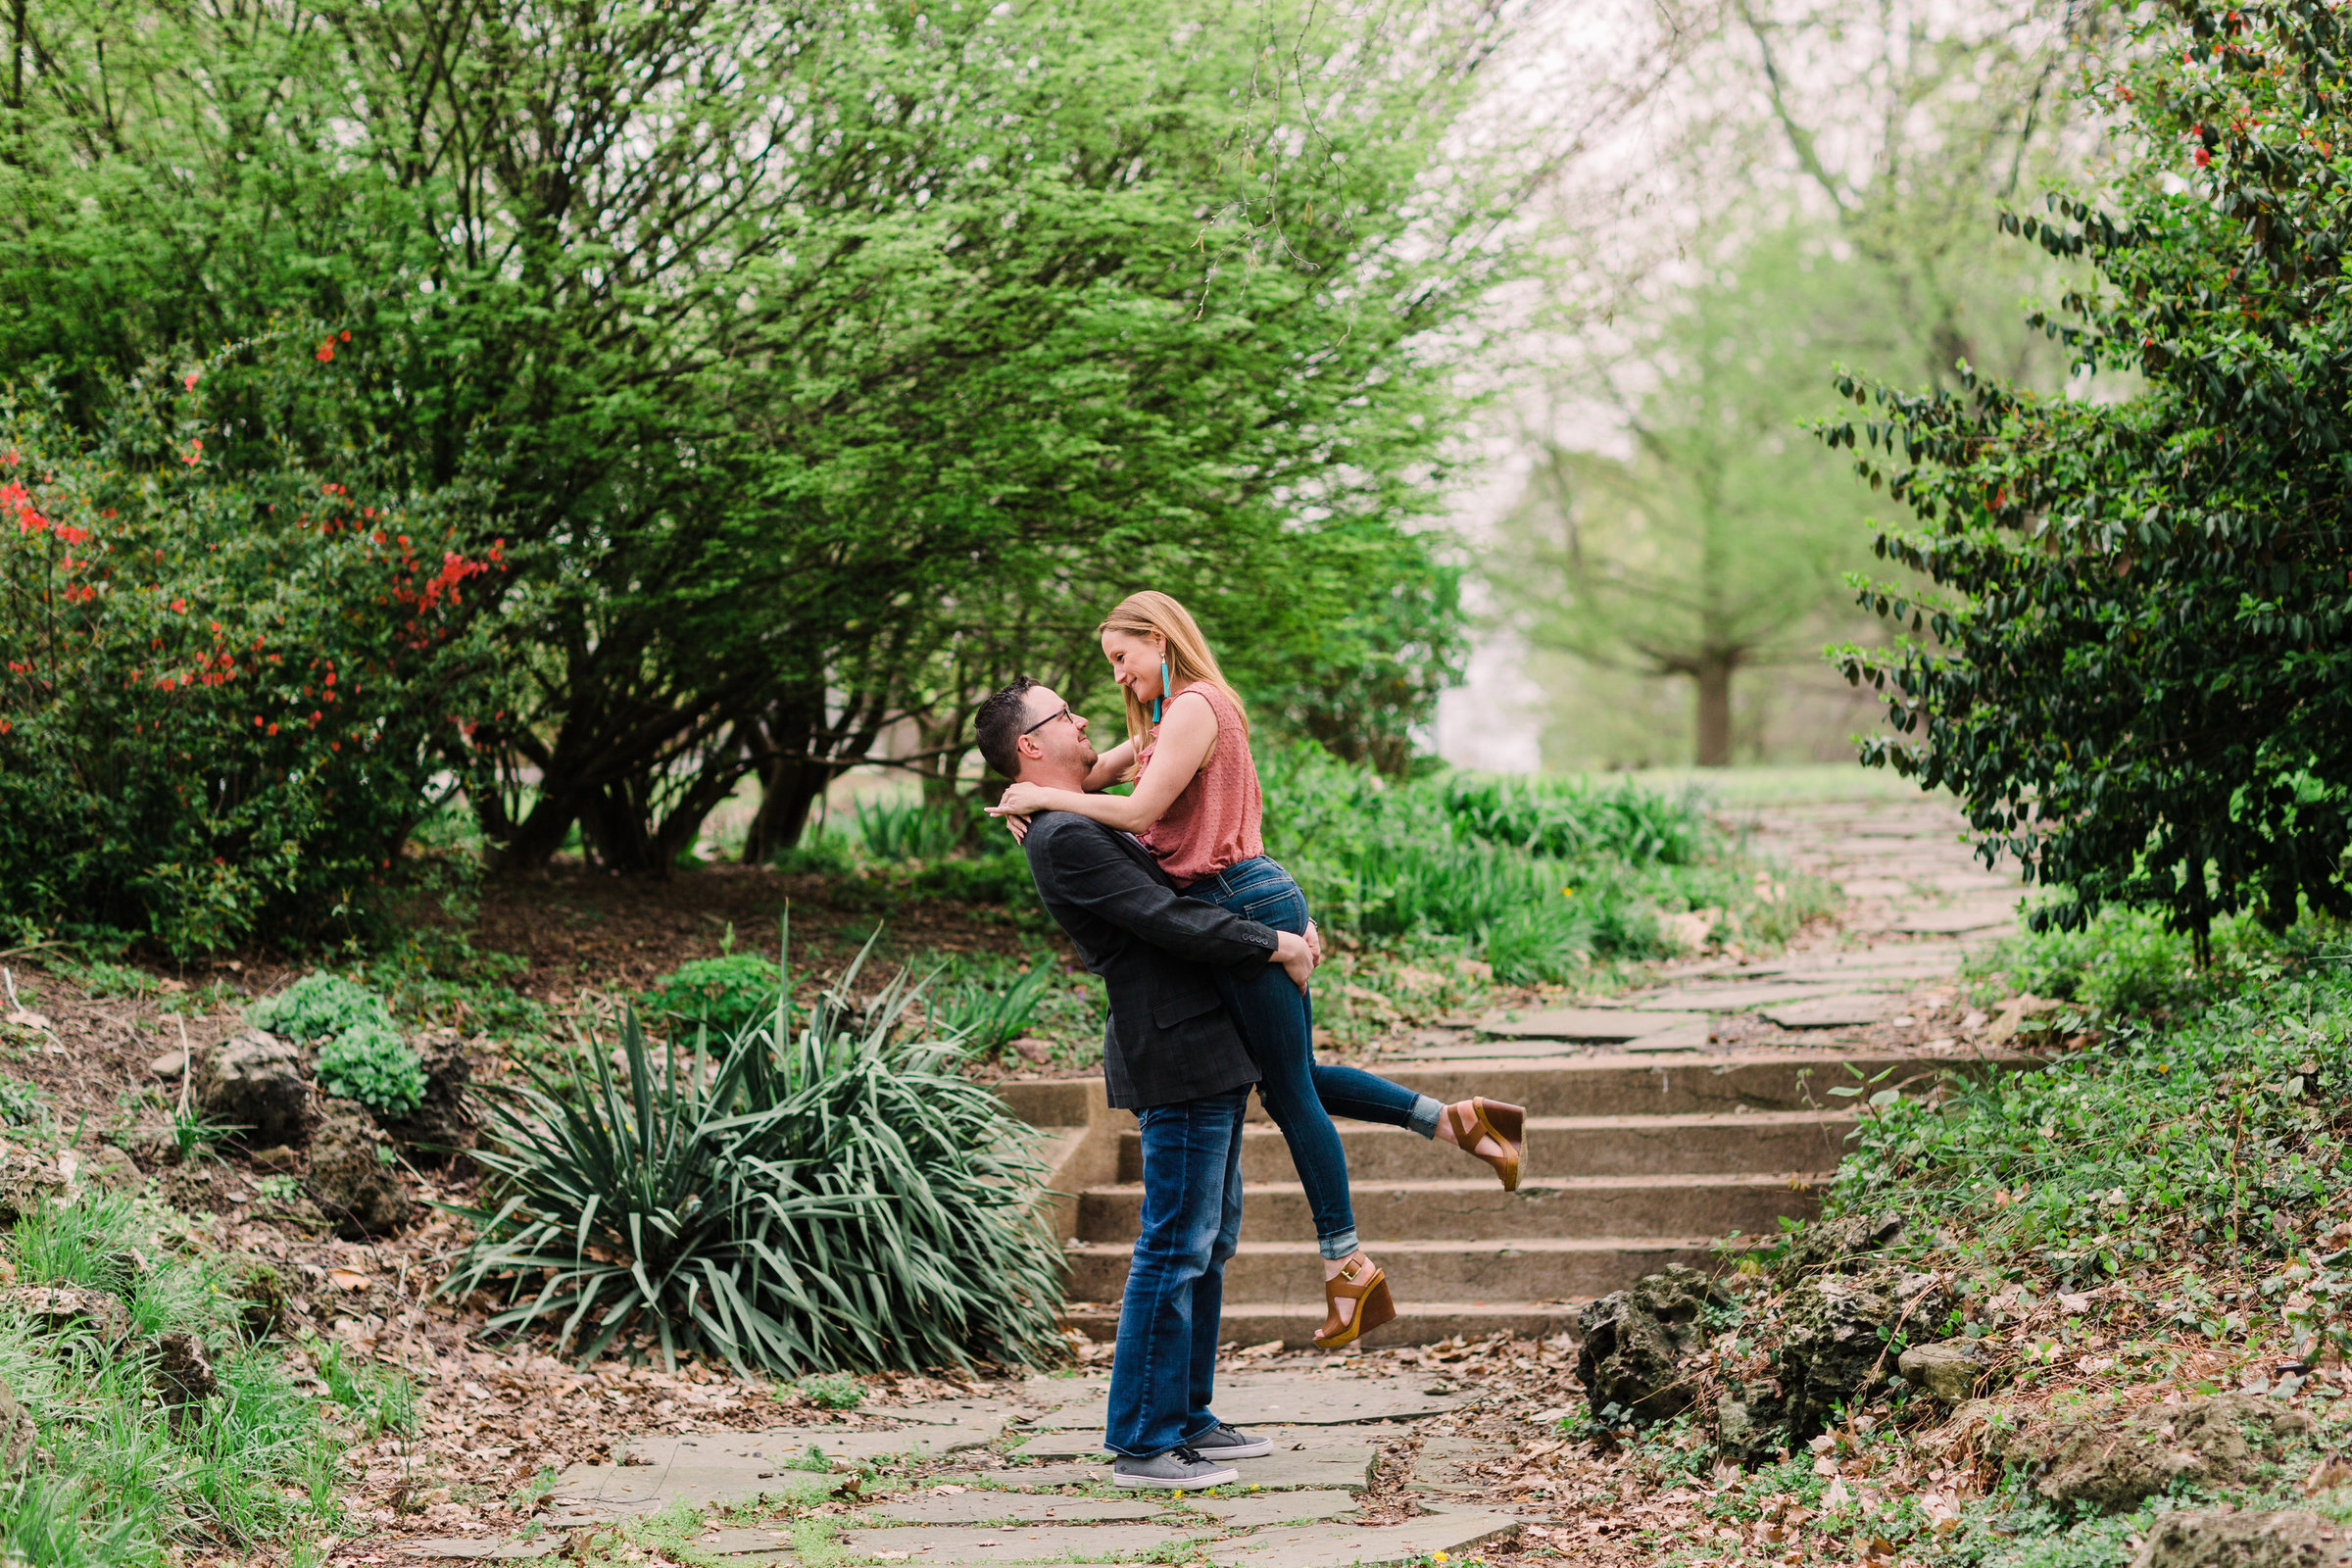 Allison-Steven-Engaged-Jackelynn-Noel-Photography-261